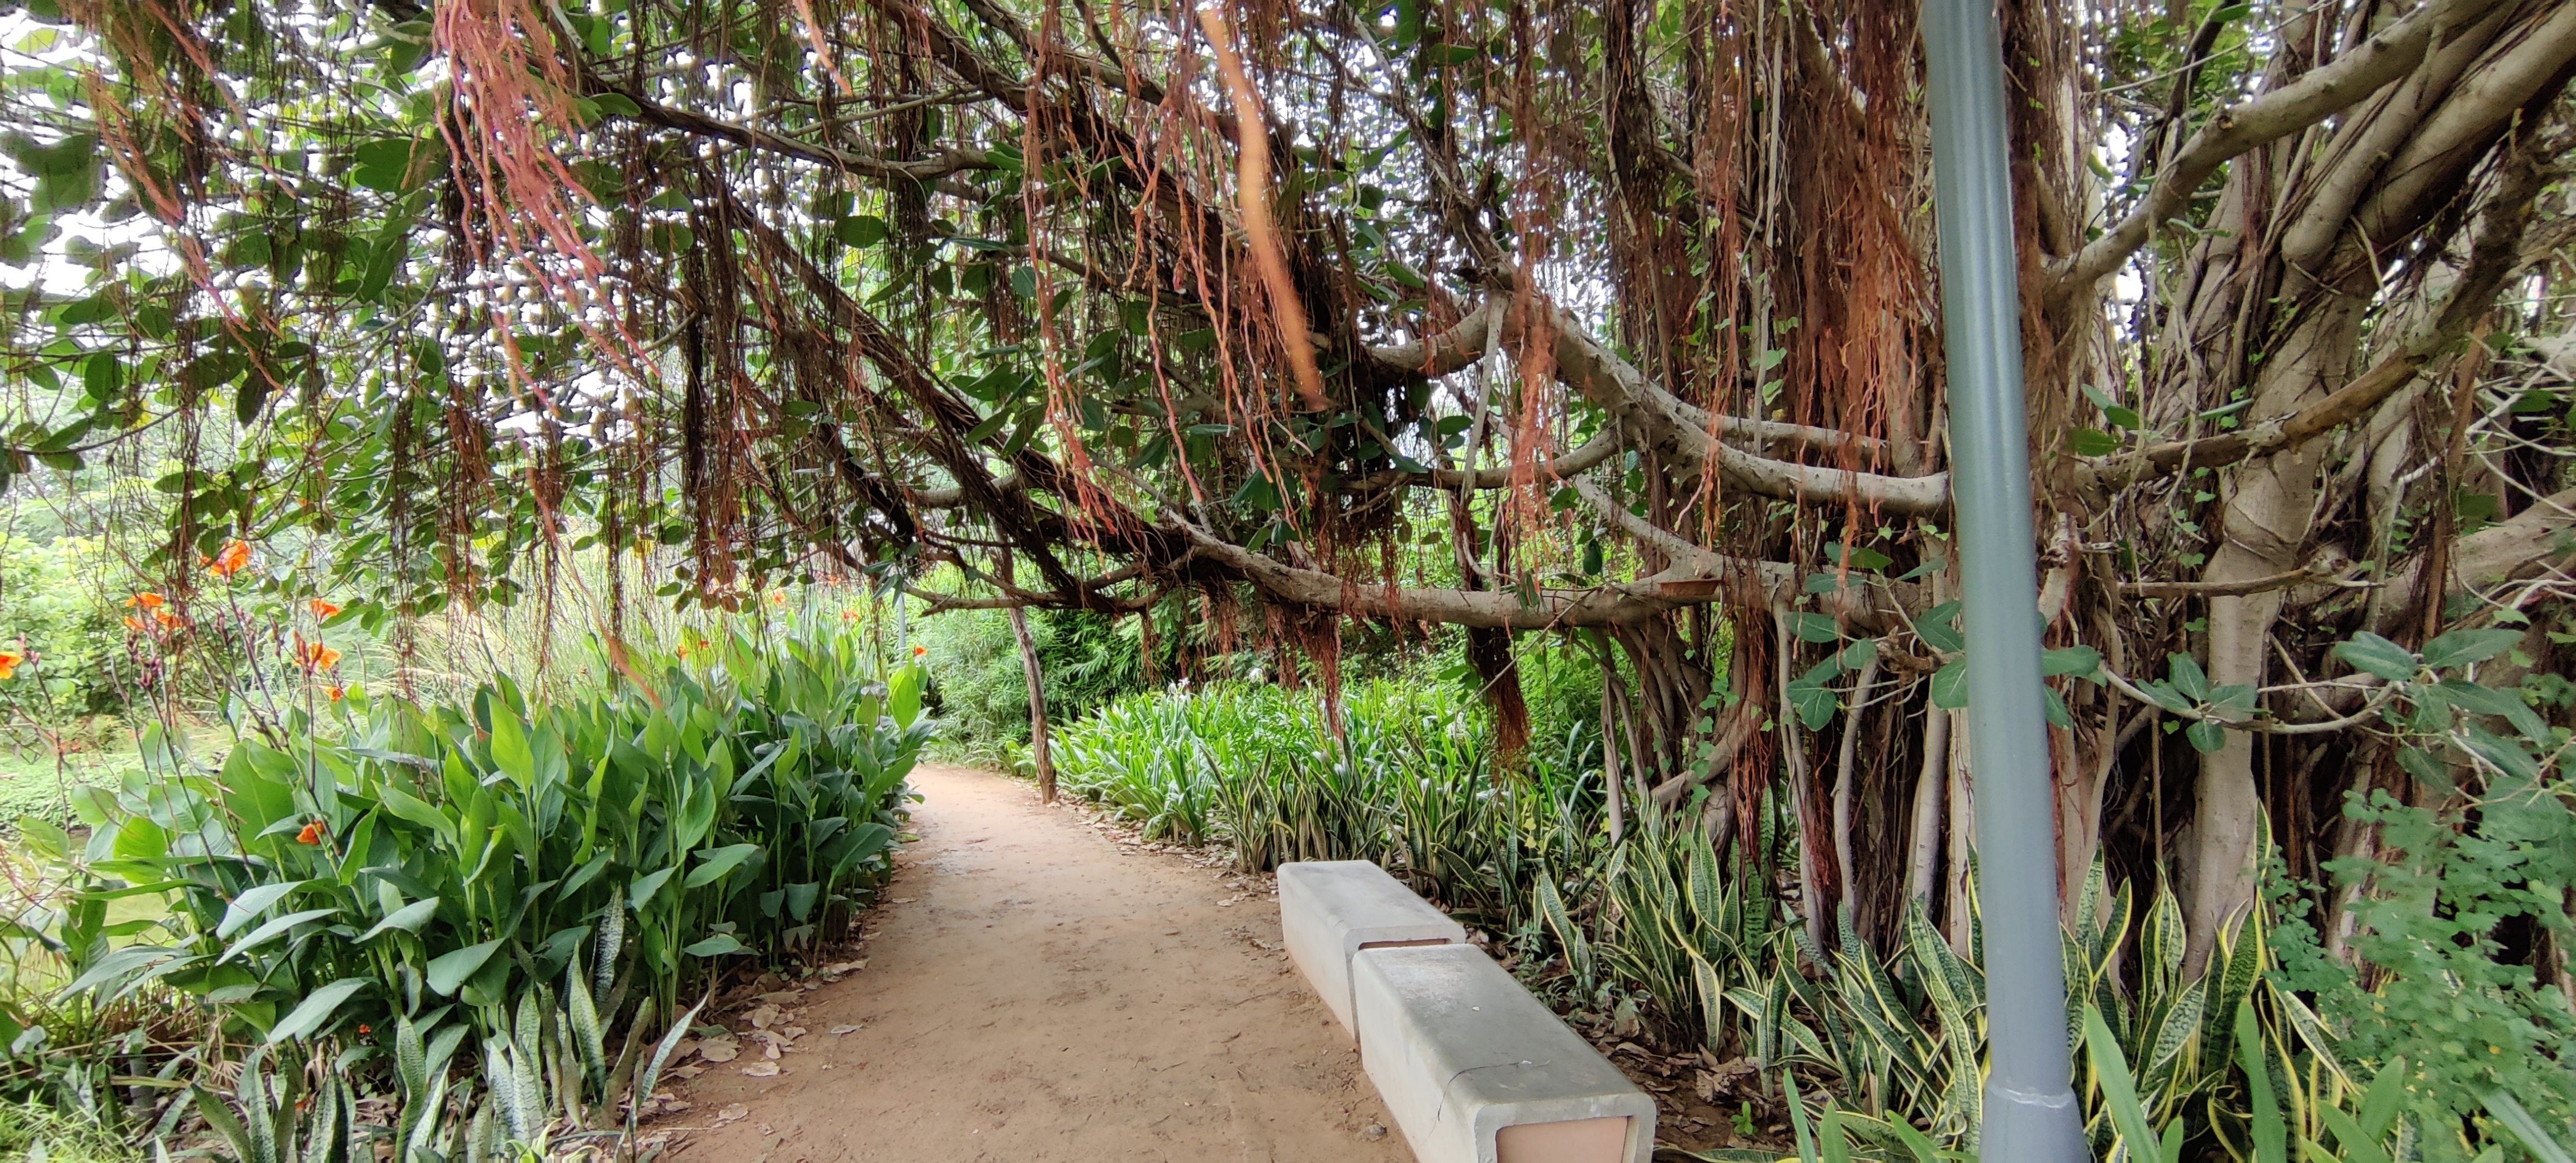 Banyan Tree at Symphony Forest Garden